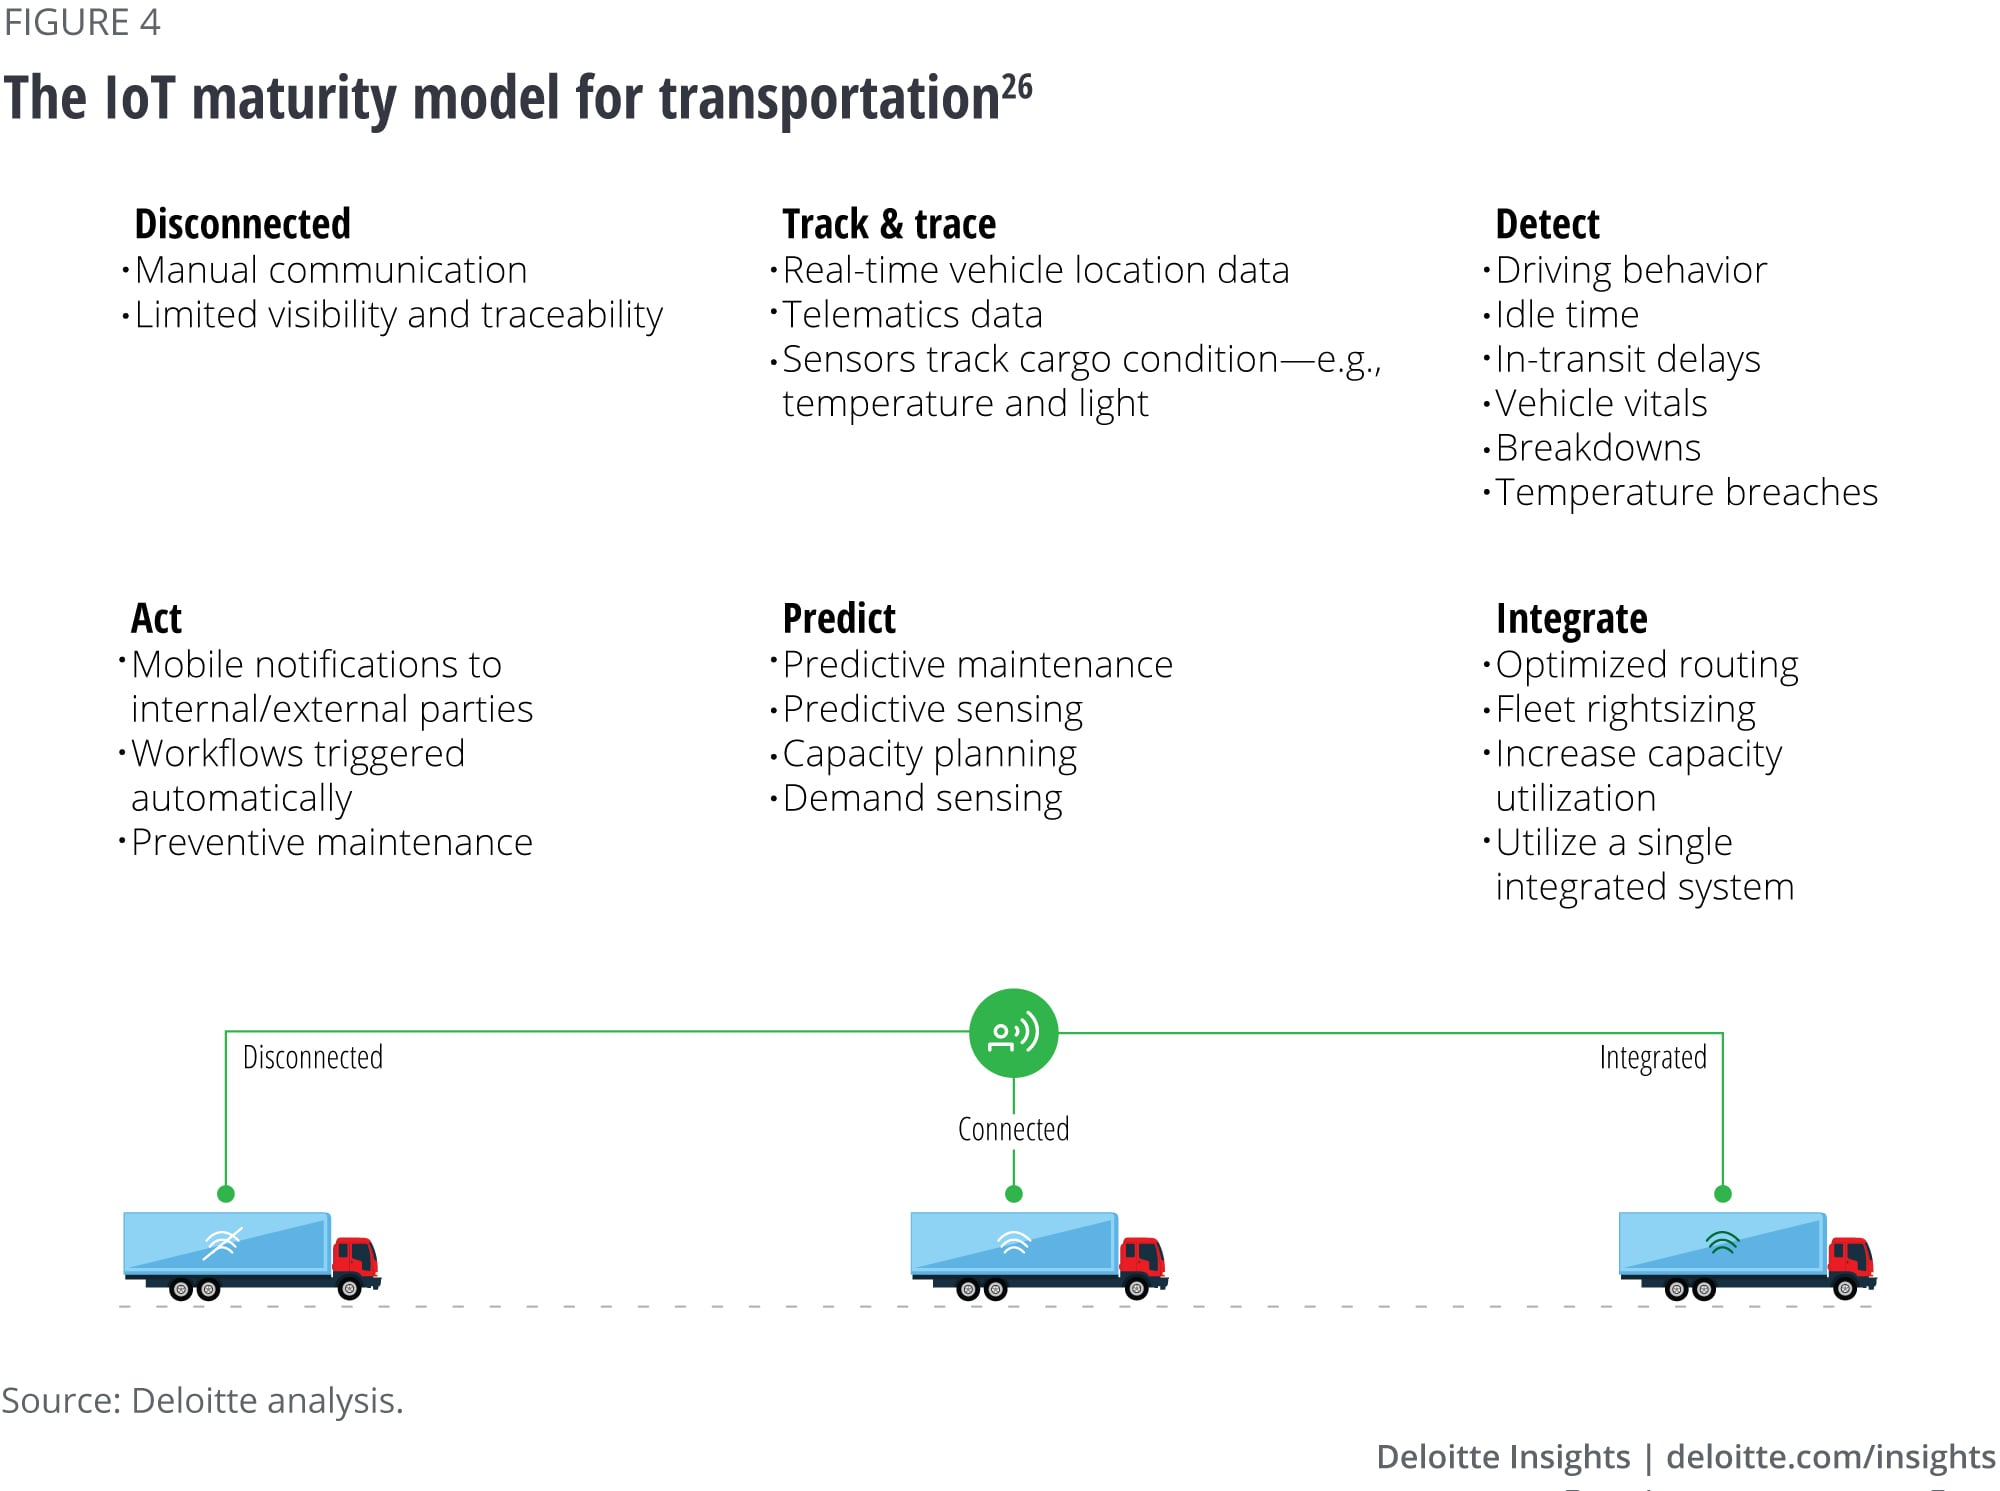 The IoT maturity model for transportation